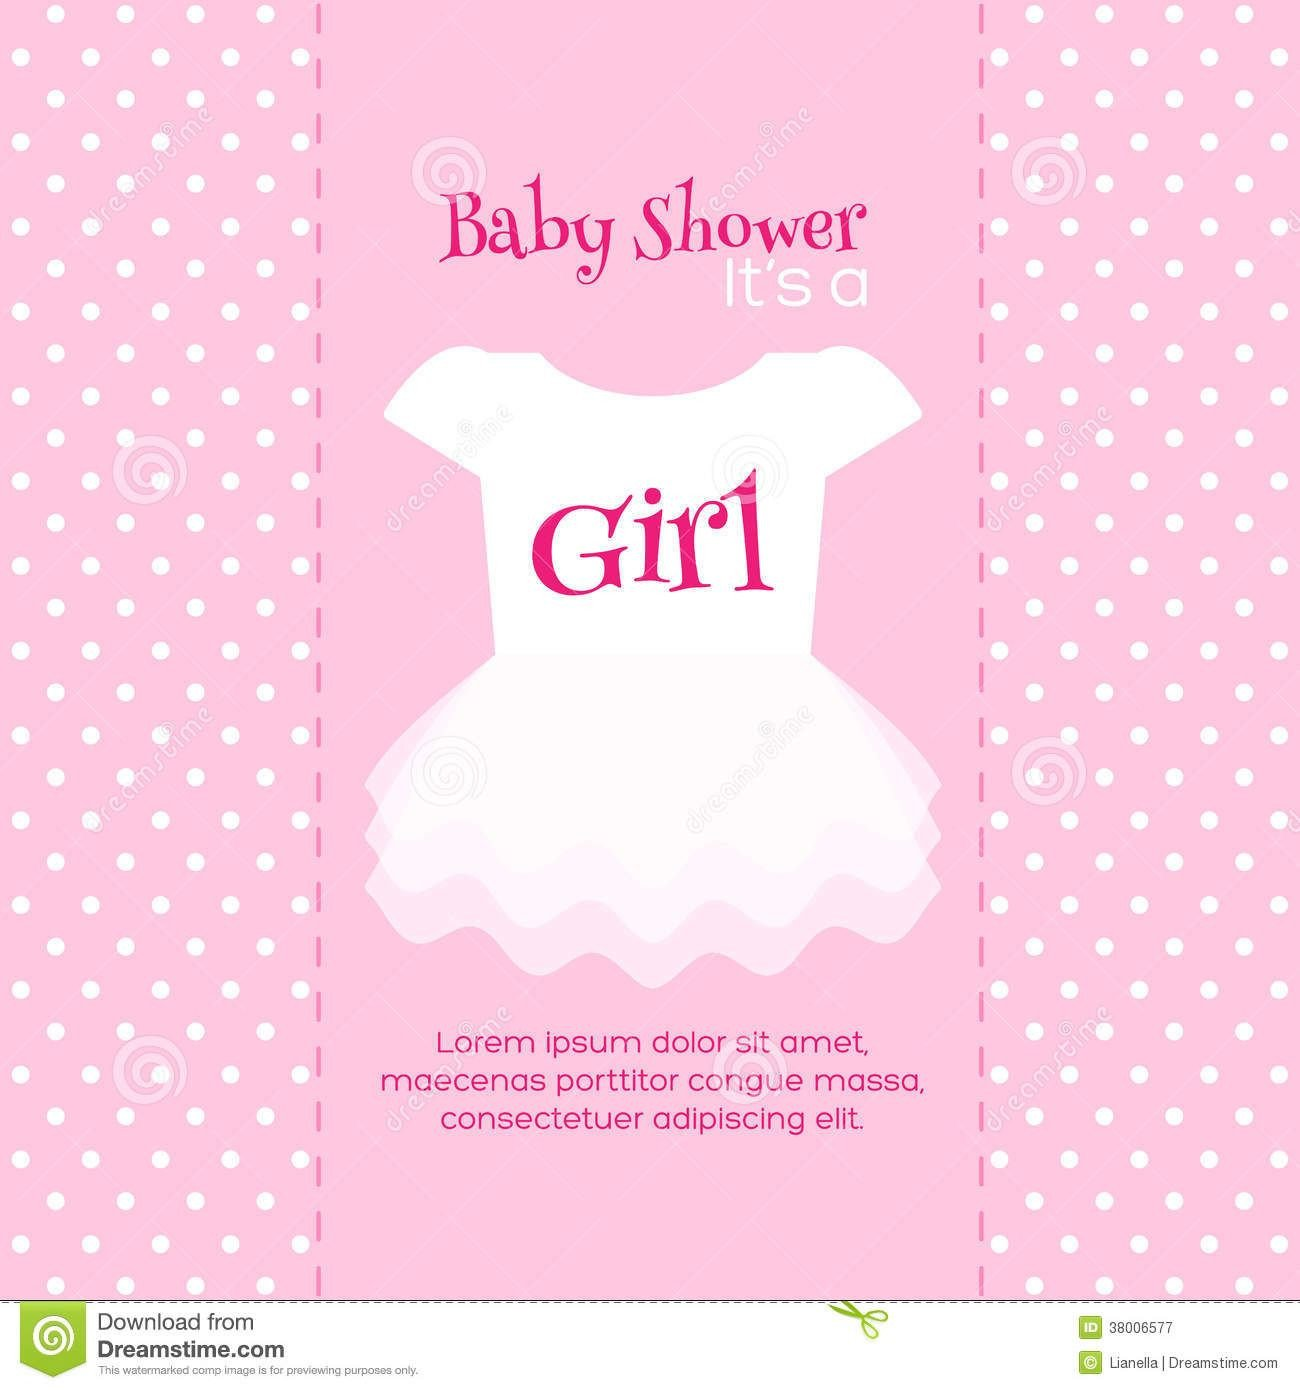 Baby Shower Invite Templates Design Free Printable Baby Shower Invitations for Girls